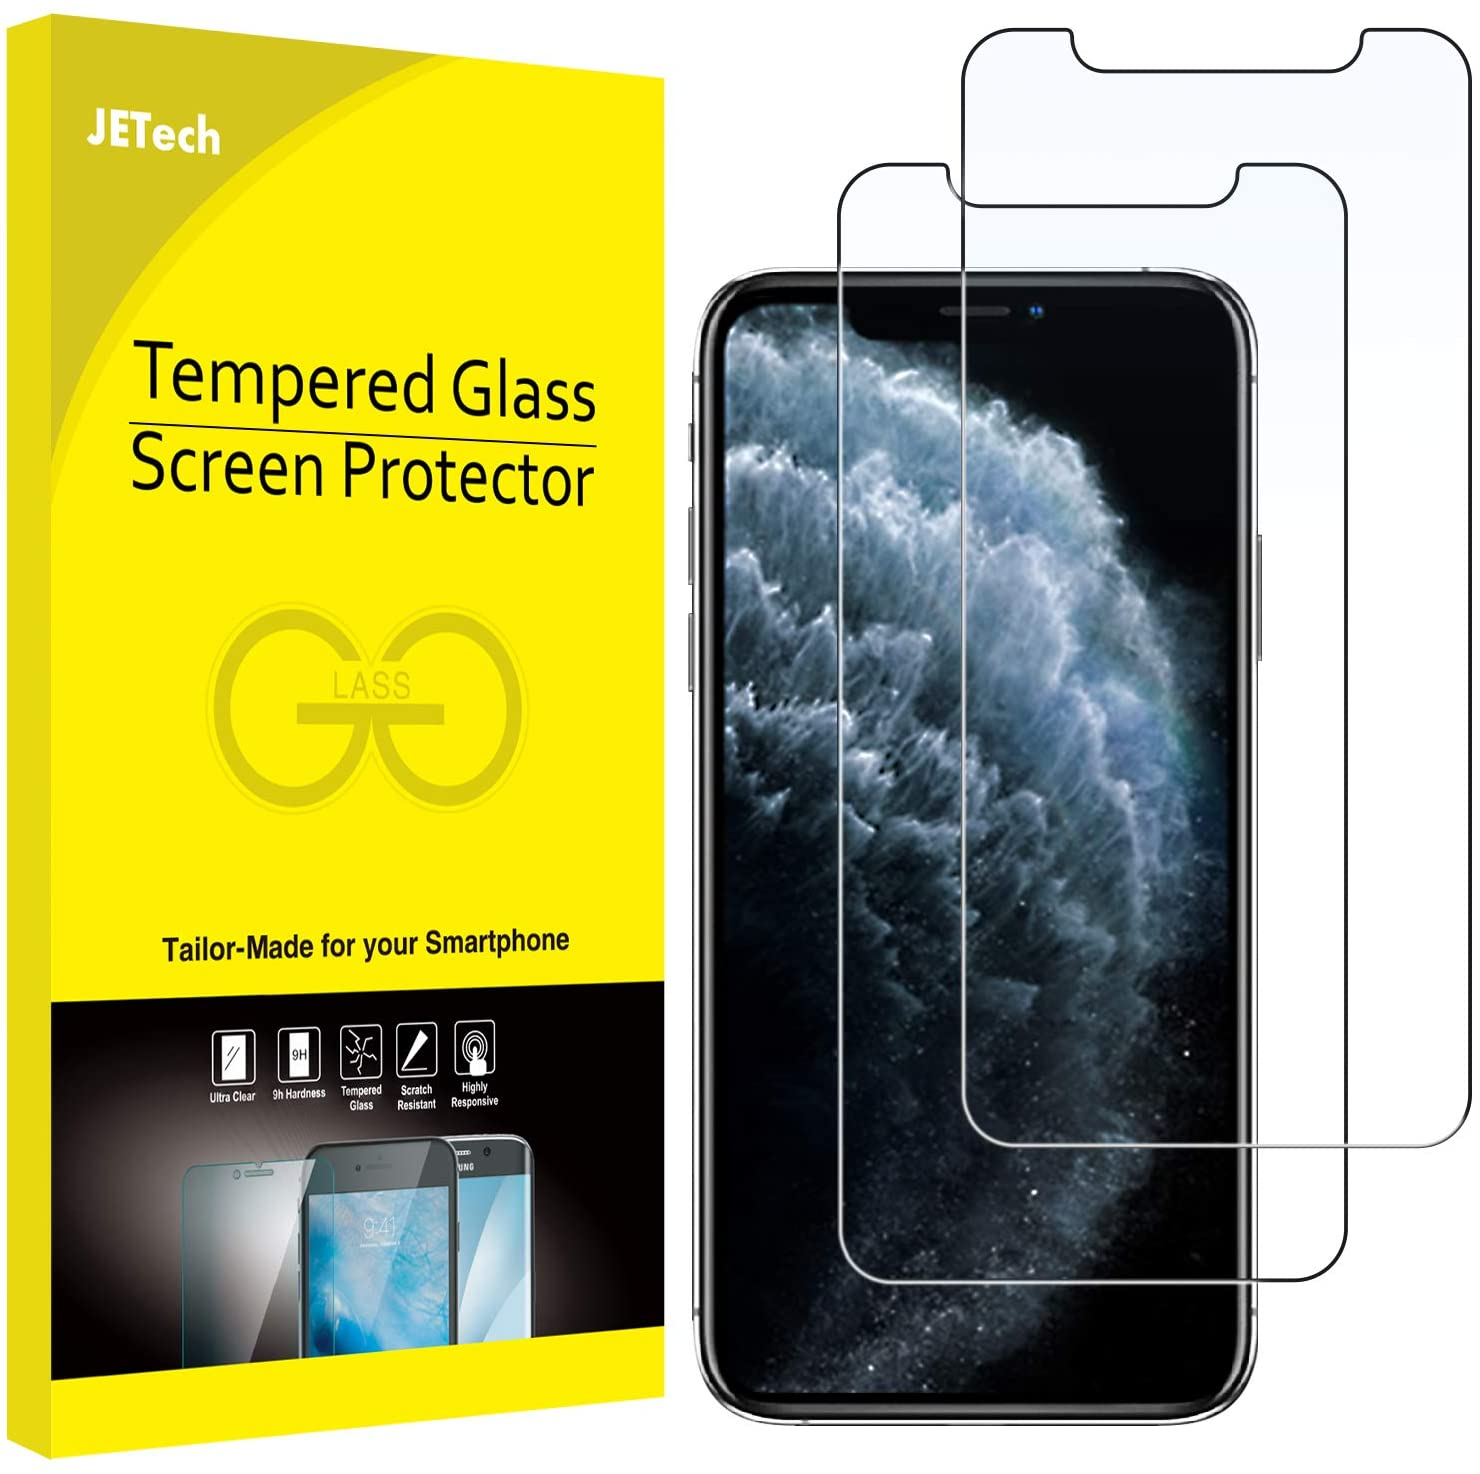 Best Cellphone Screen Protectors for Home, Work and Travel